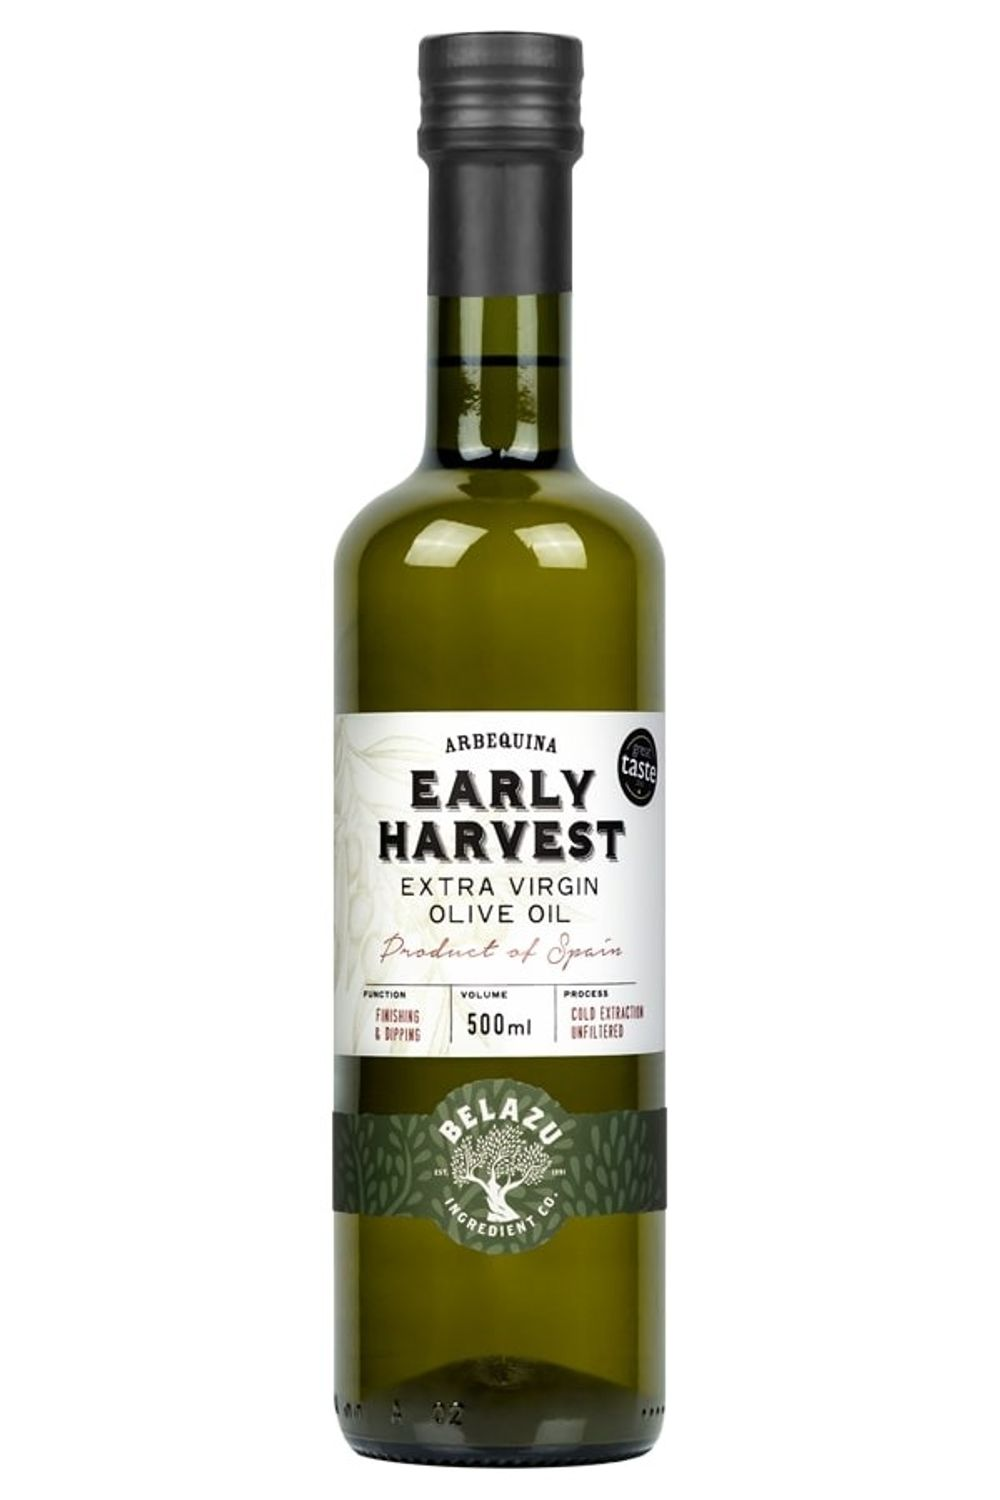 Early Harvest Arbequina Olive Oil